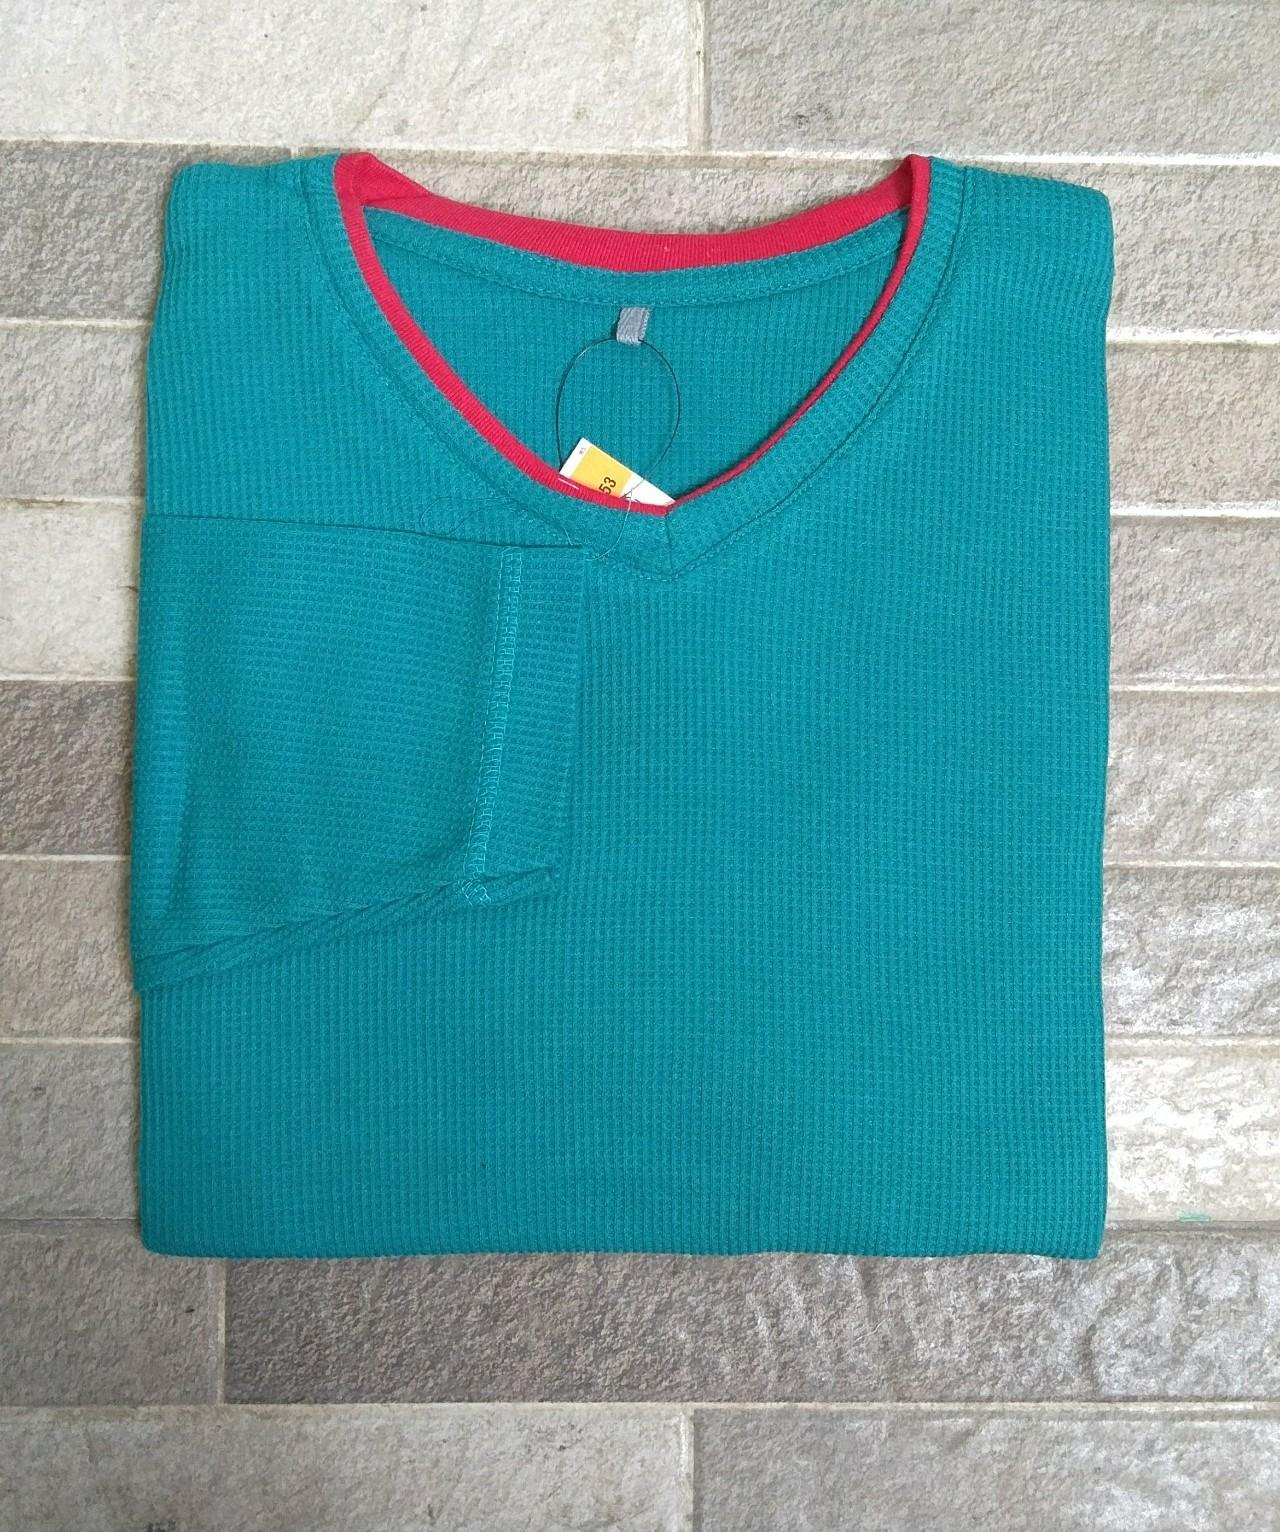 Buy Sell Cheapest Terlaris Kaos Polos Best Quality Product Deals Maroon Triton Wafer